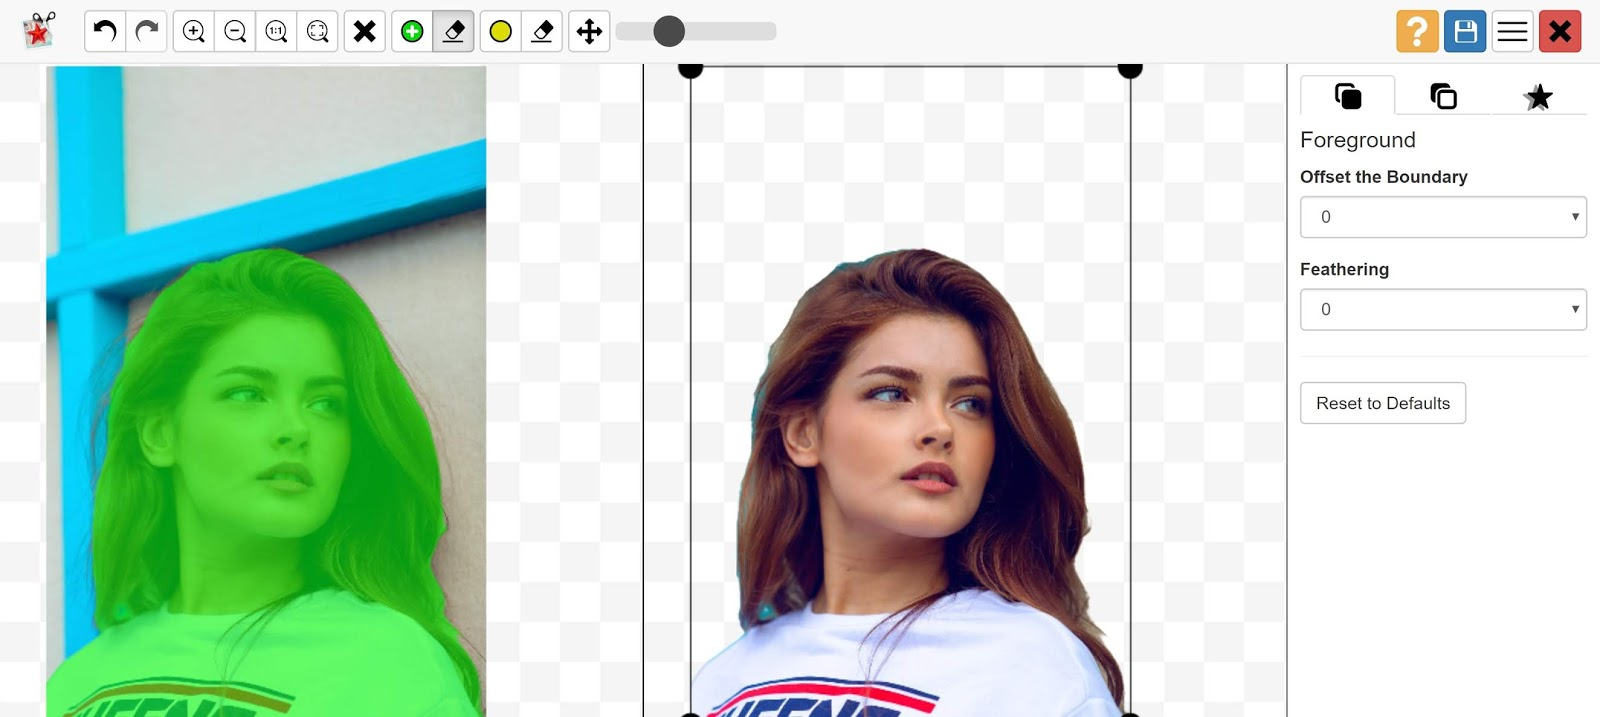 photo scissors automatically removes background from image